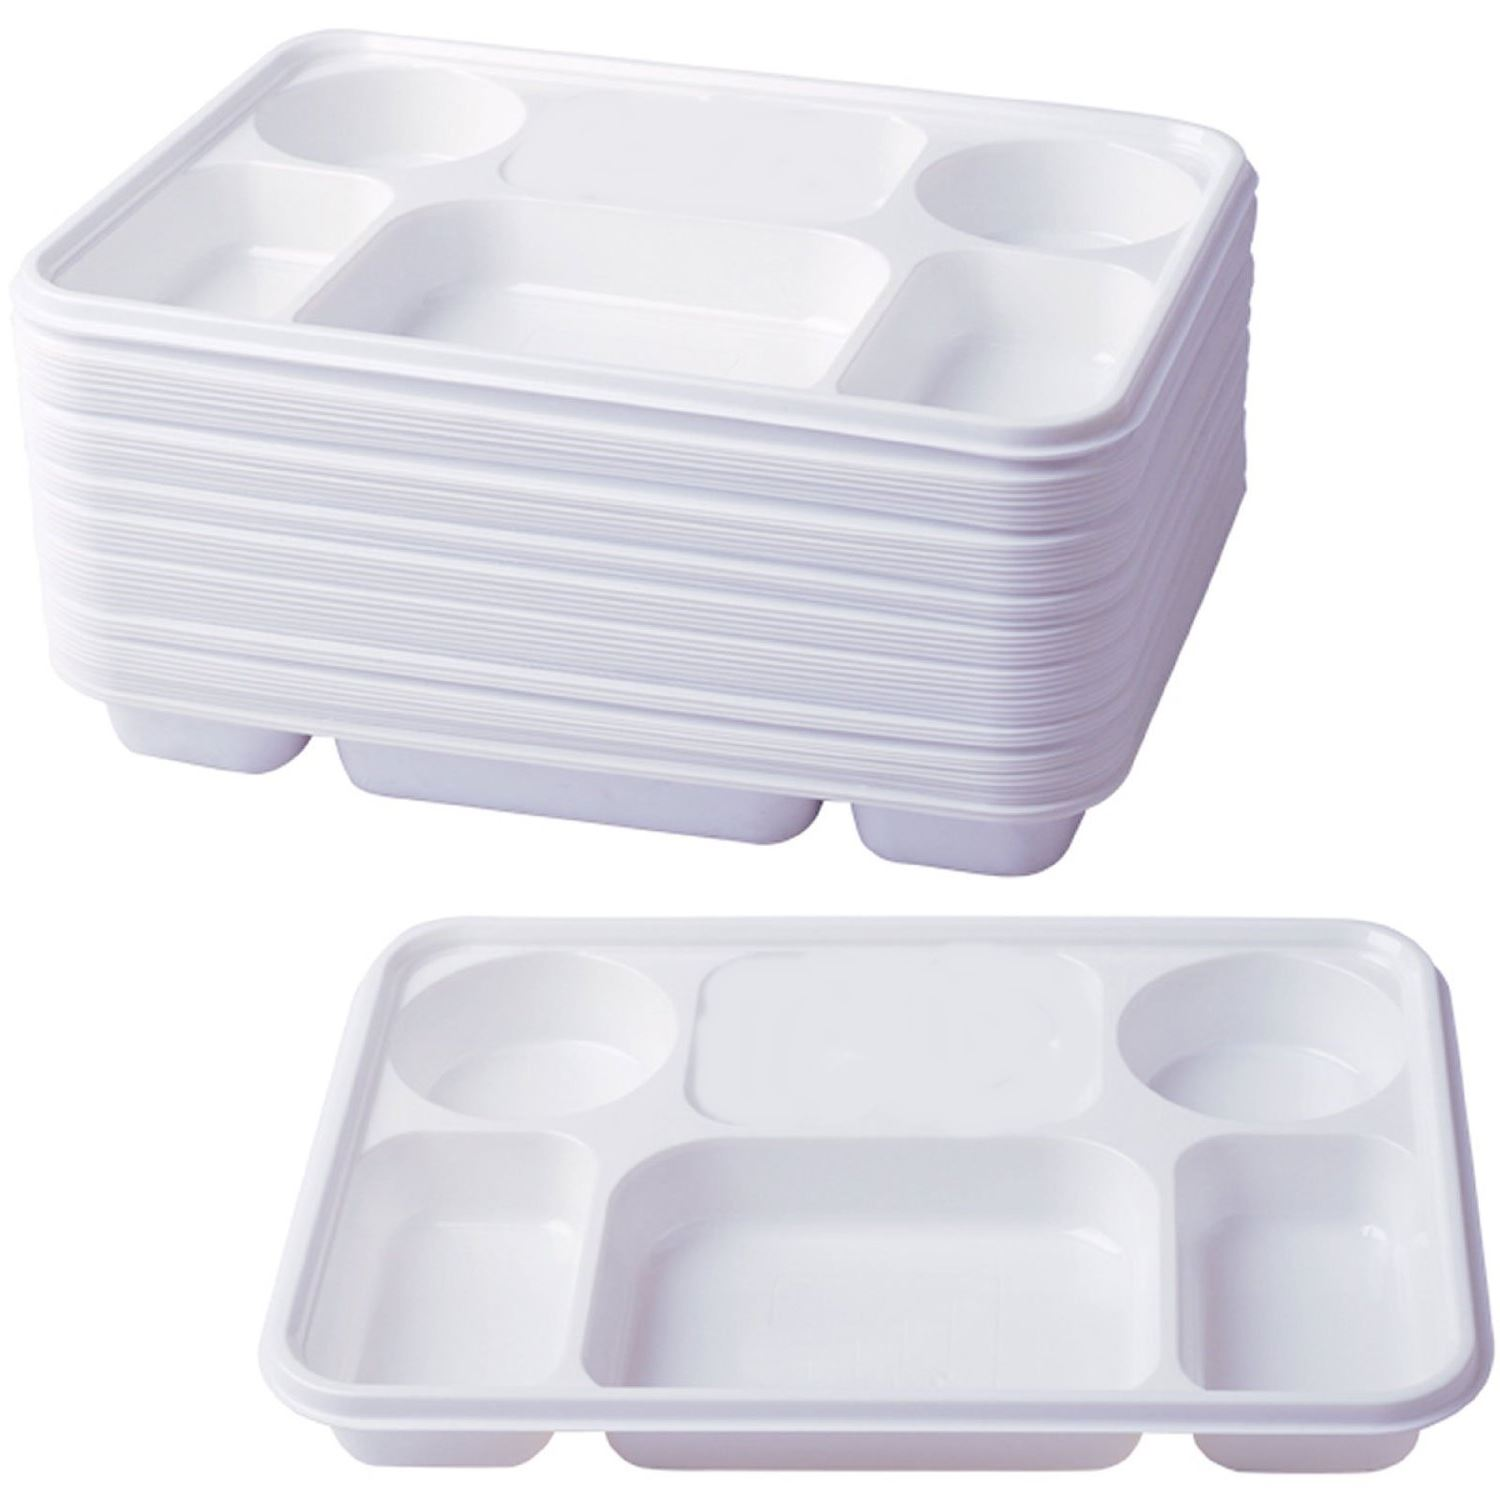 6 Compartment Plastic Dinner Plates 50pc Party Home Food Disposable Section Tray  sc 1 st  eBay & 6 Compartment Plastic Dinner Plates 50pc Party Home Food Disposable ...